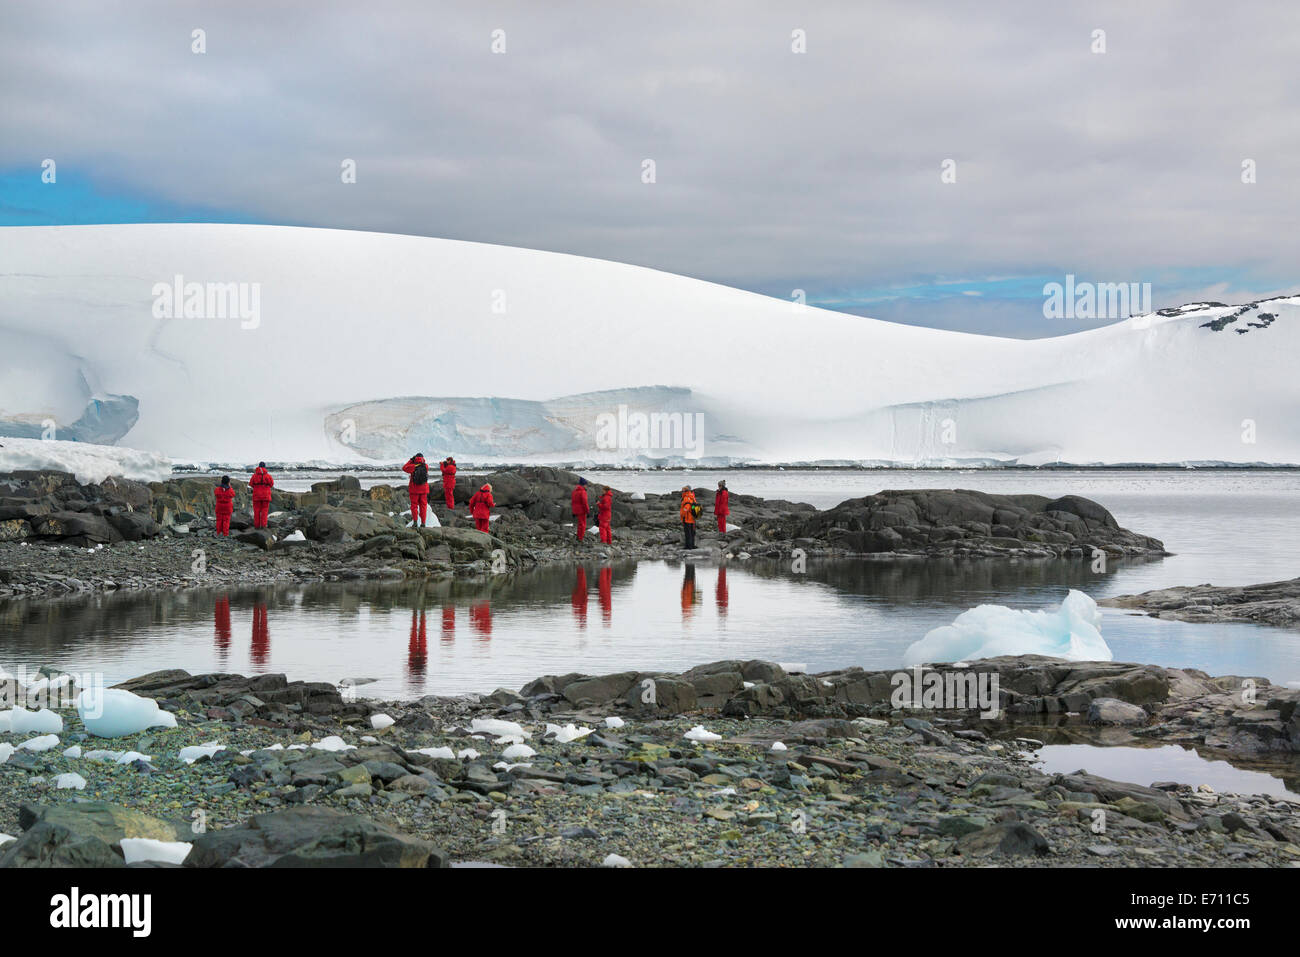 Travellers in bright orange waterproofs observing and photographing the scenery and wildlife on an Antarctic island. - Stock Image